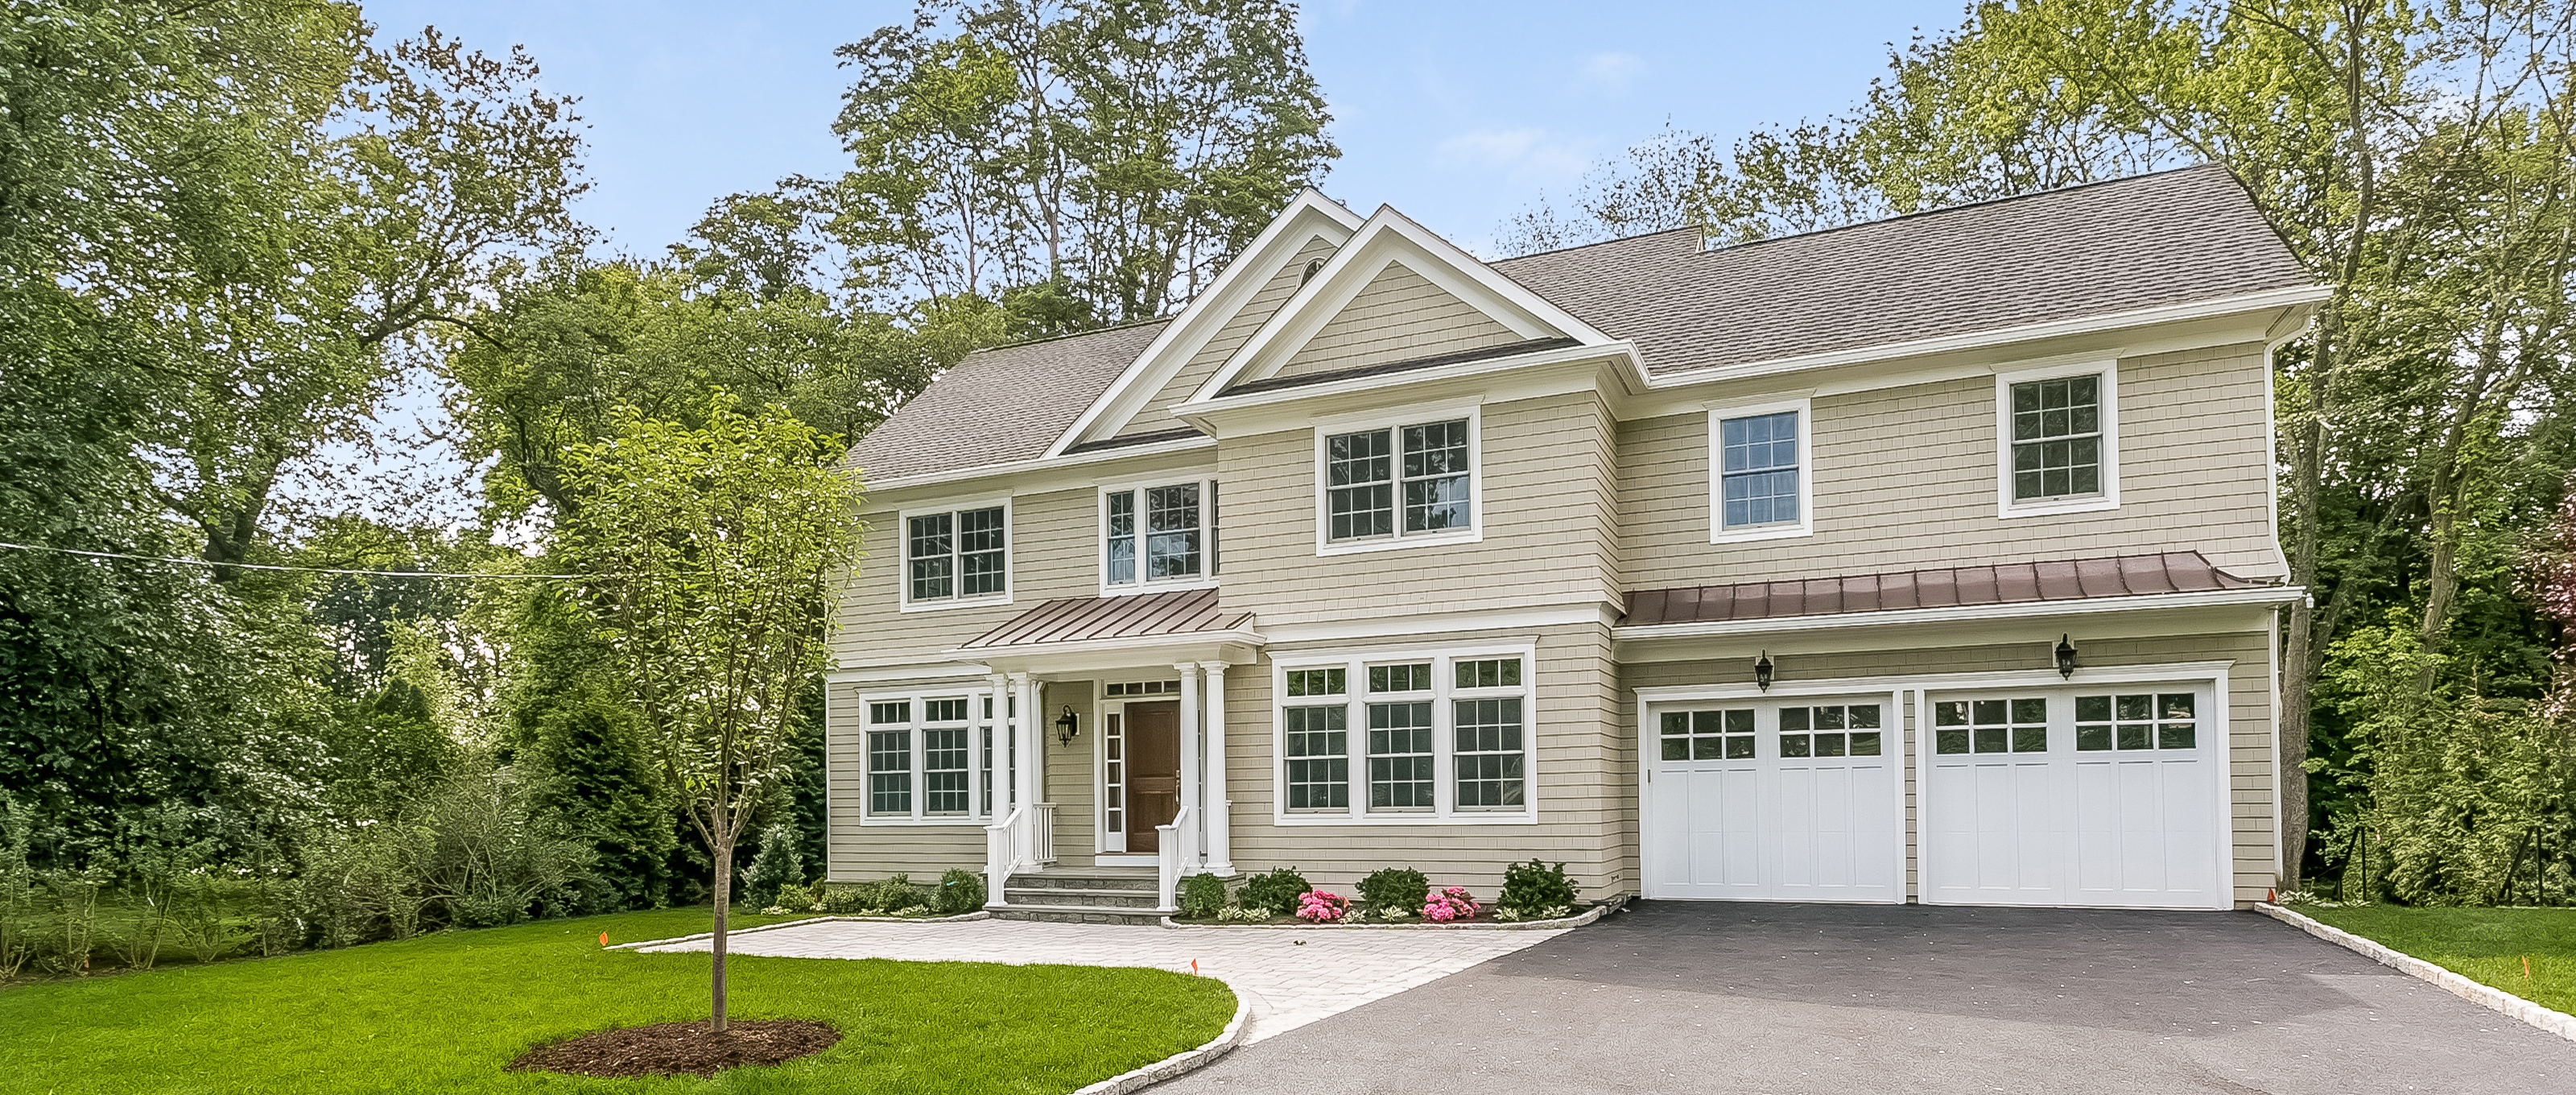 Single Family Home for Sale at Exceptiona 121 Old Post Road Rye, New York 10580 United States